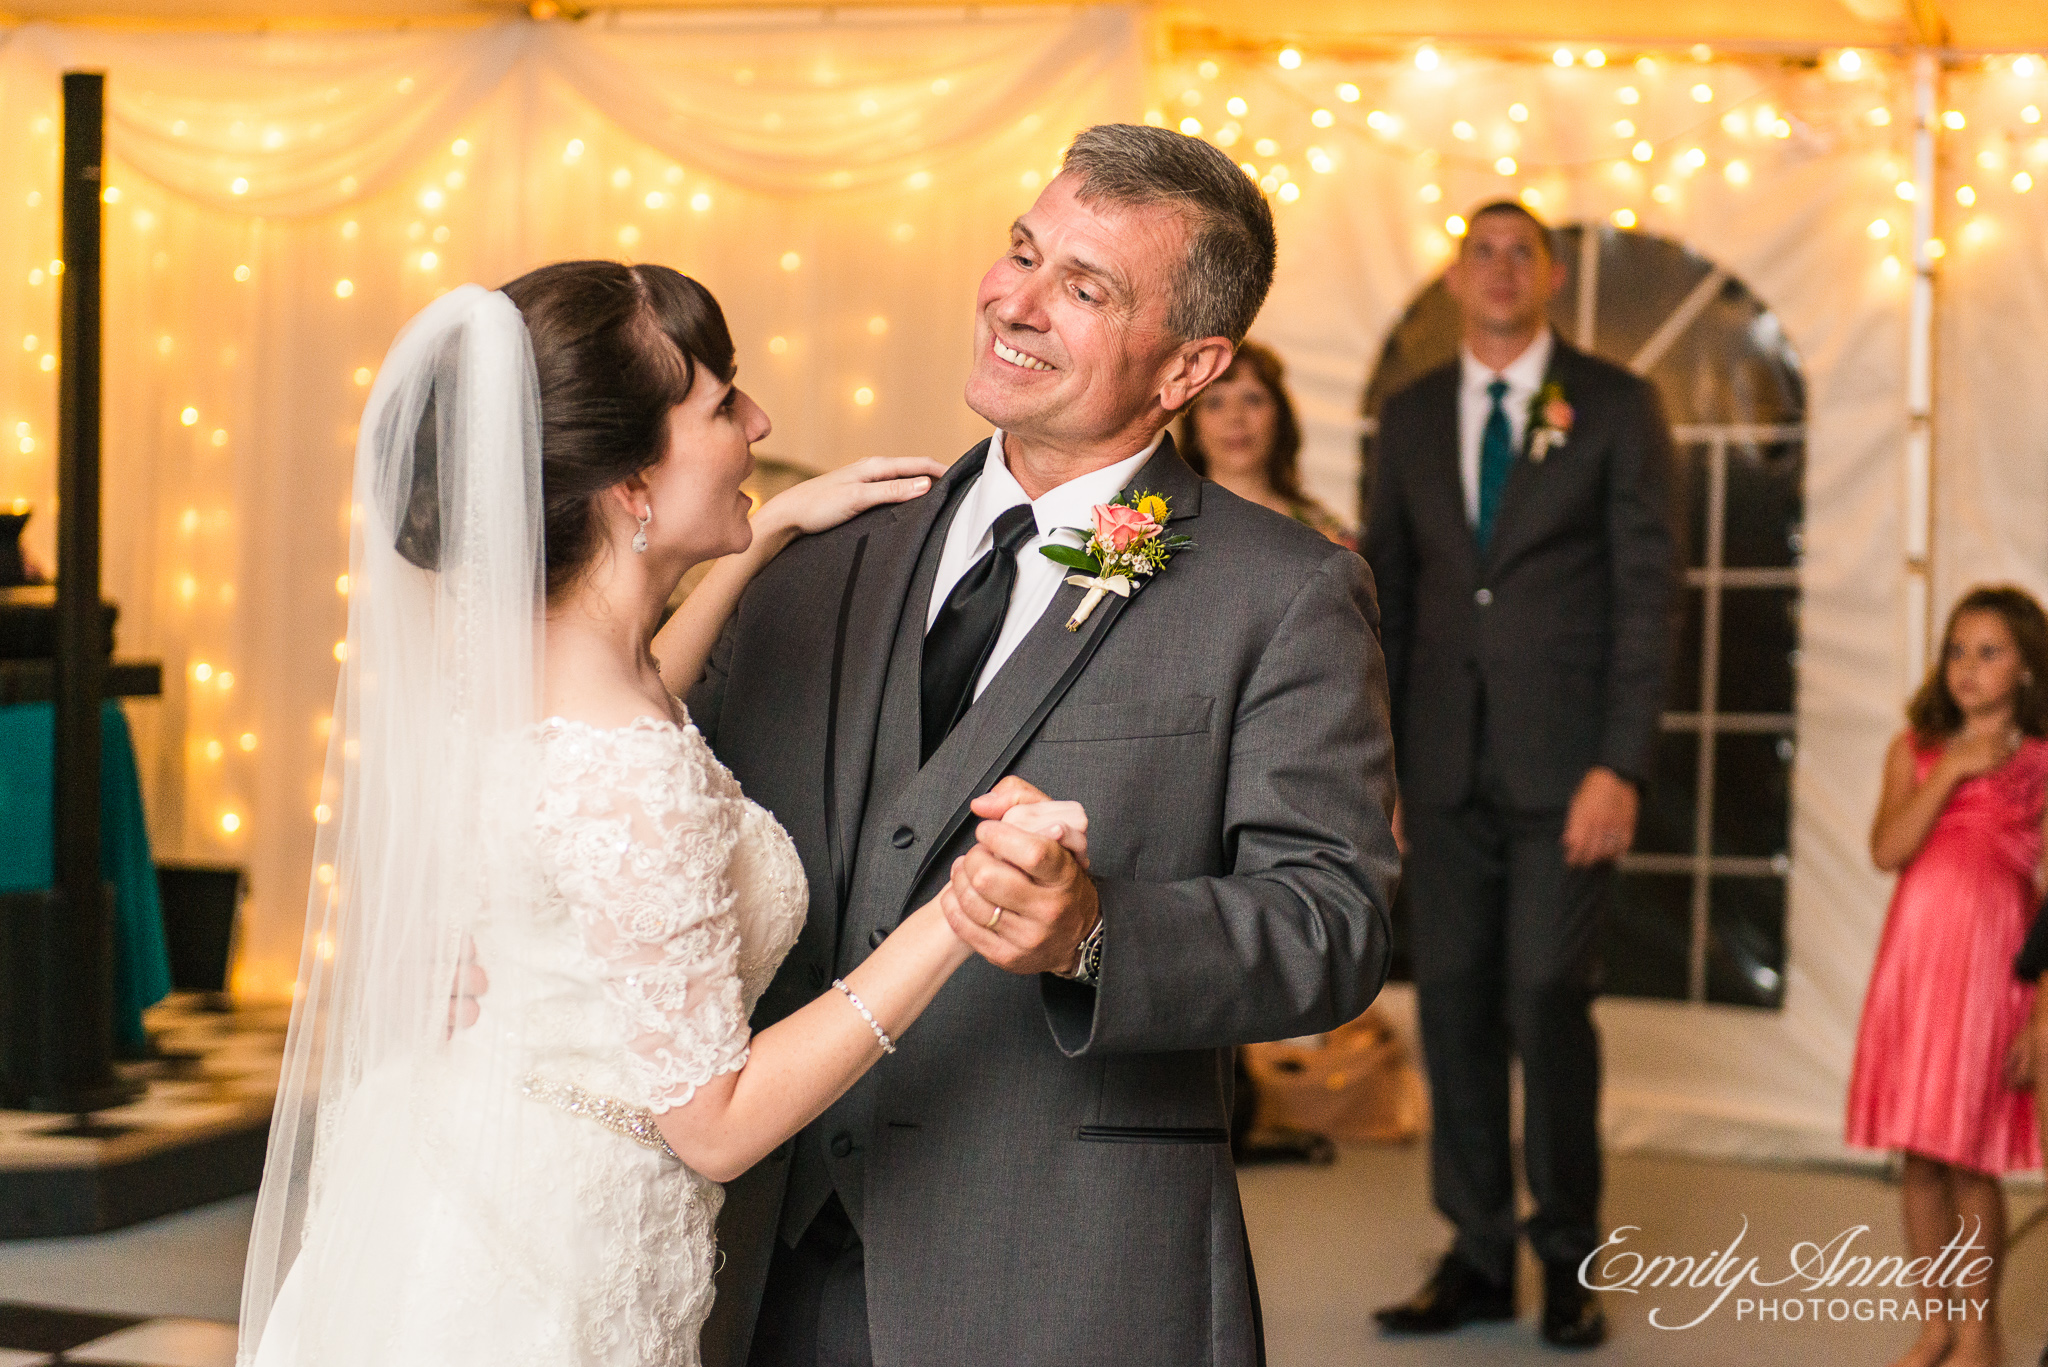 A bride and the father of the bride share their father daughter dance with smiles during a country wedding reception at Amber Grove near Richmond, Virginia